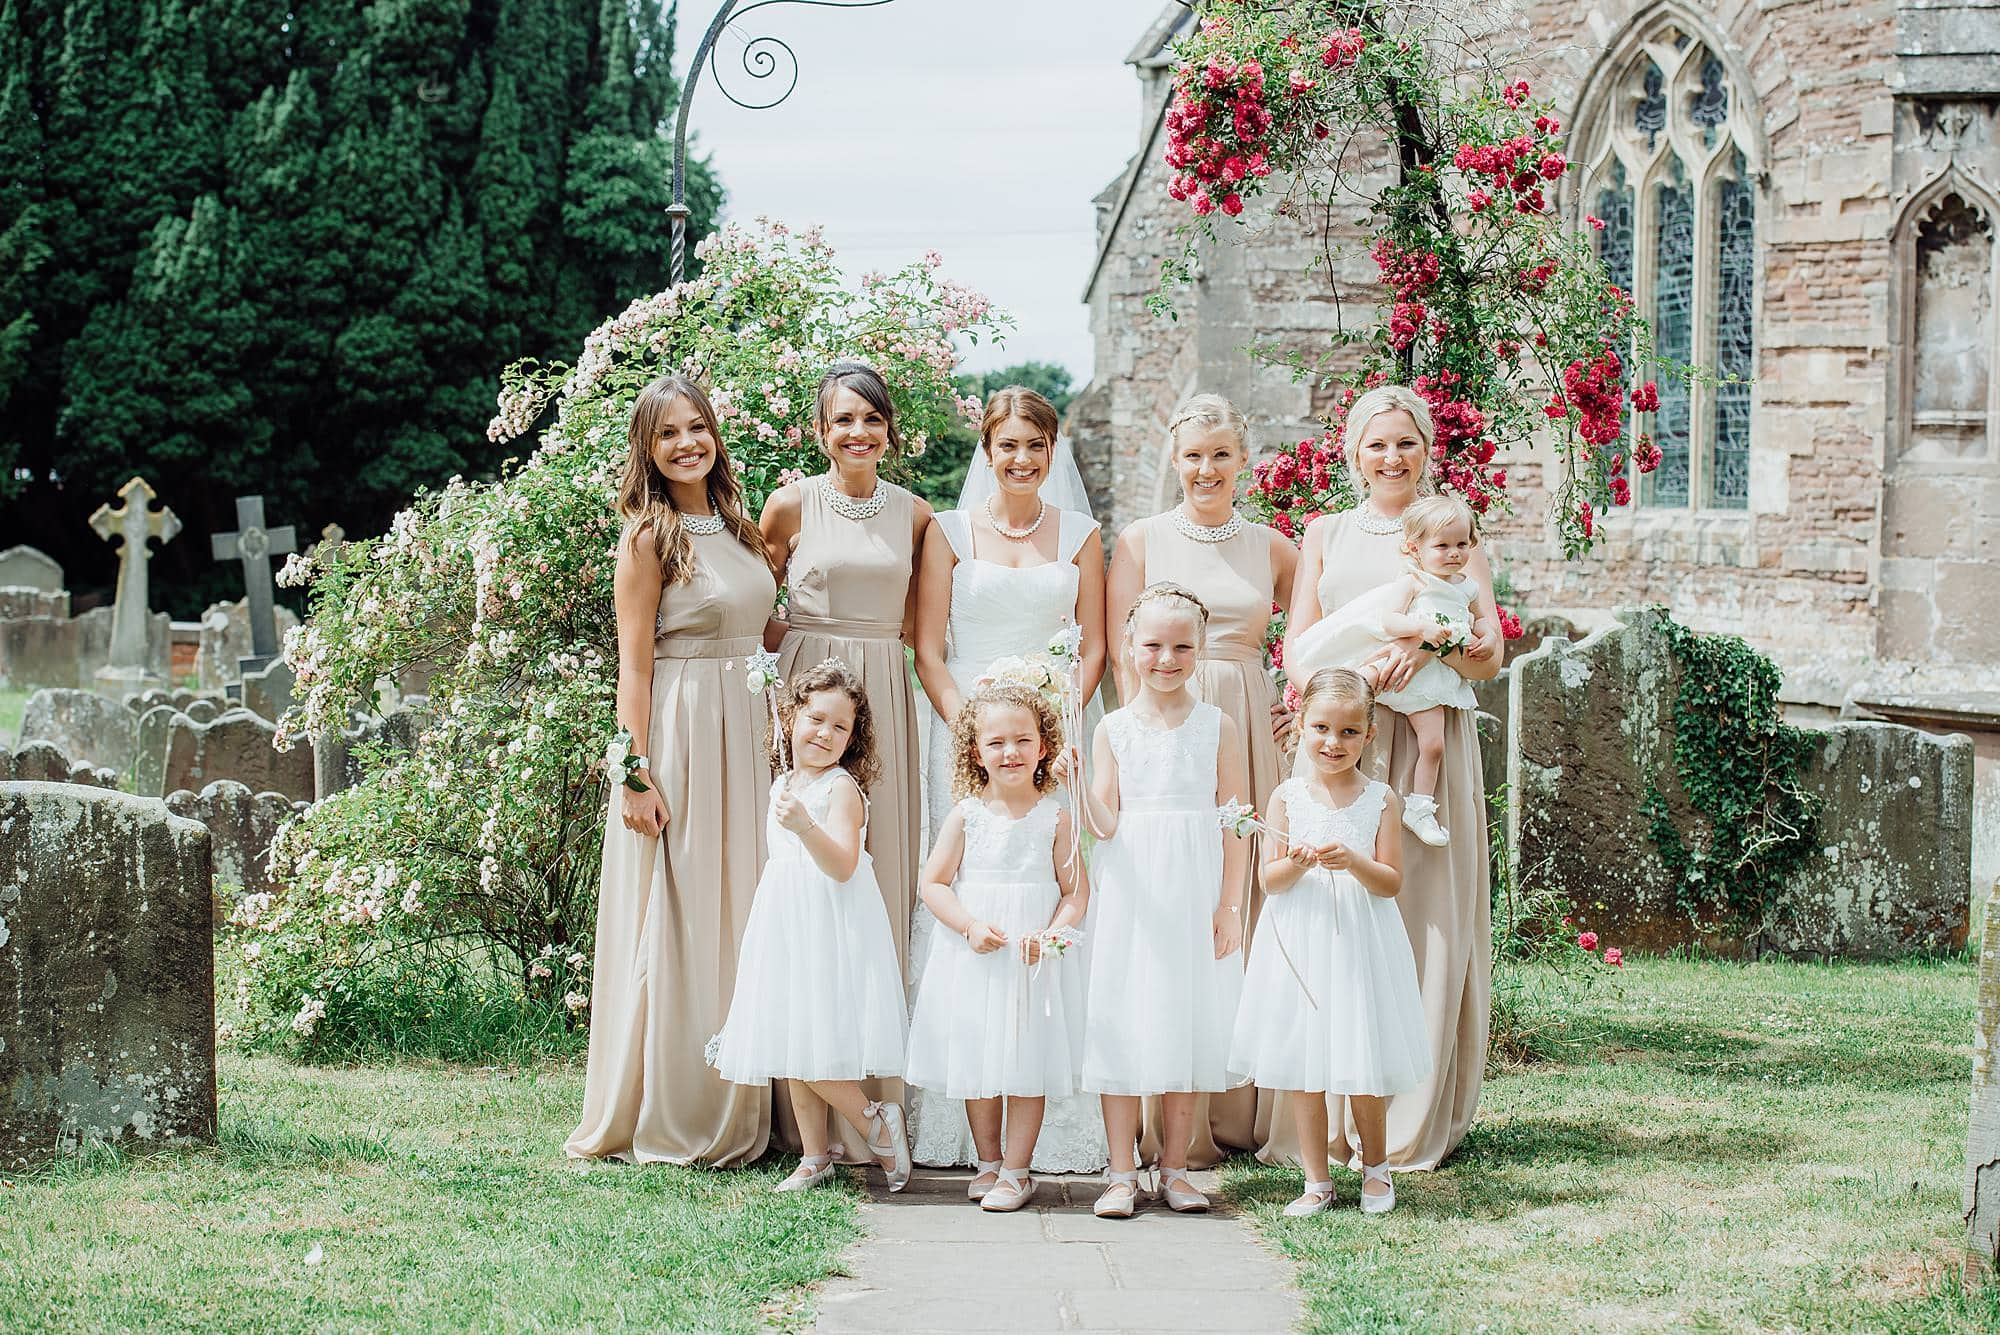 Bridesmaids stood posing in the grounds of St Michael's church Winterbourne Bristol